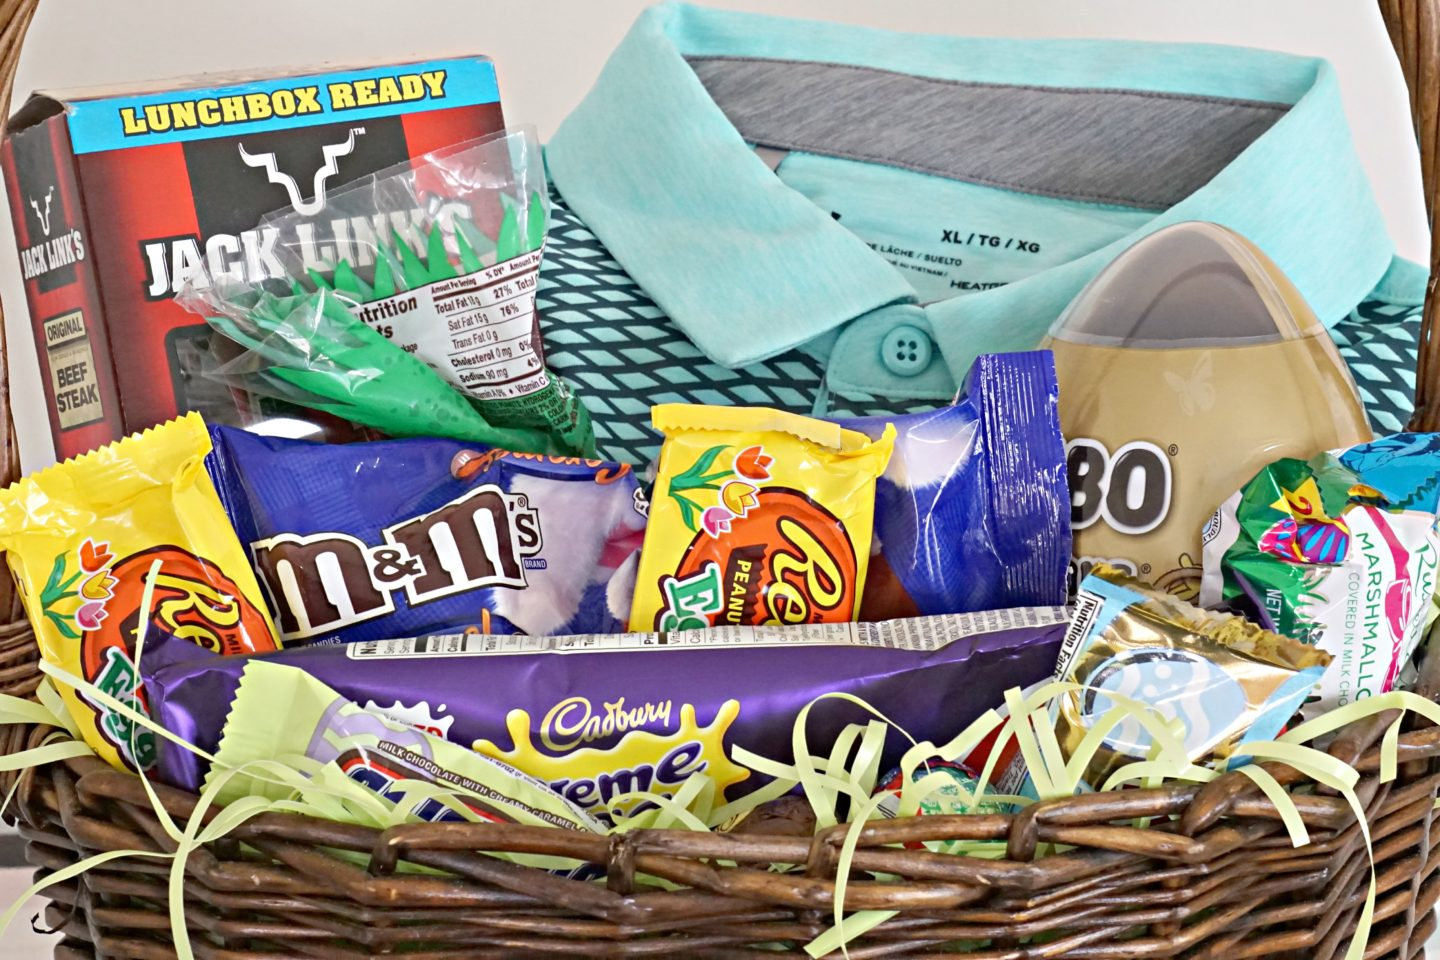 Easter baskets for the family crabcakes crew cuts scotts basket is easy year to year he likes golf he likes golf shirts i usually just get him a golf shirt and throw in all his favorite junk food that i negle Gallery